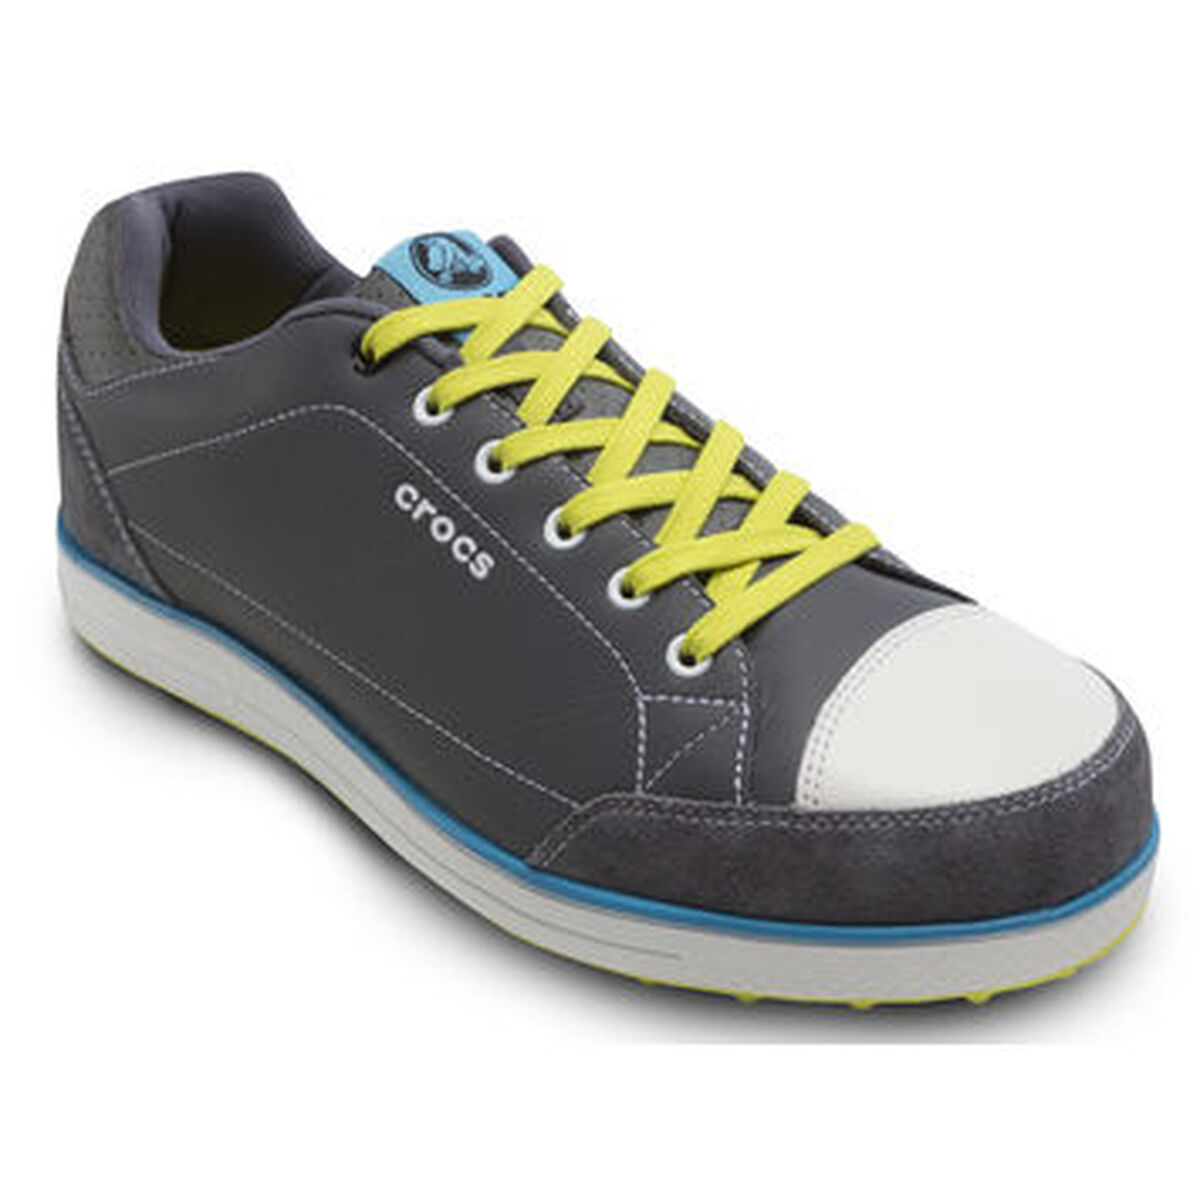 f3cf9f5f6 Crocs Karlson Men s Golf Shoes  Shop Crocs Men s Golf Shoes